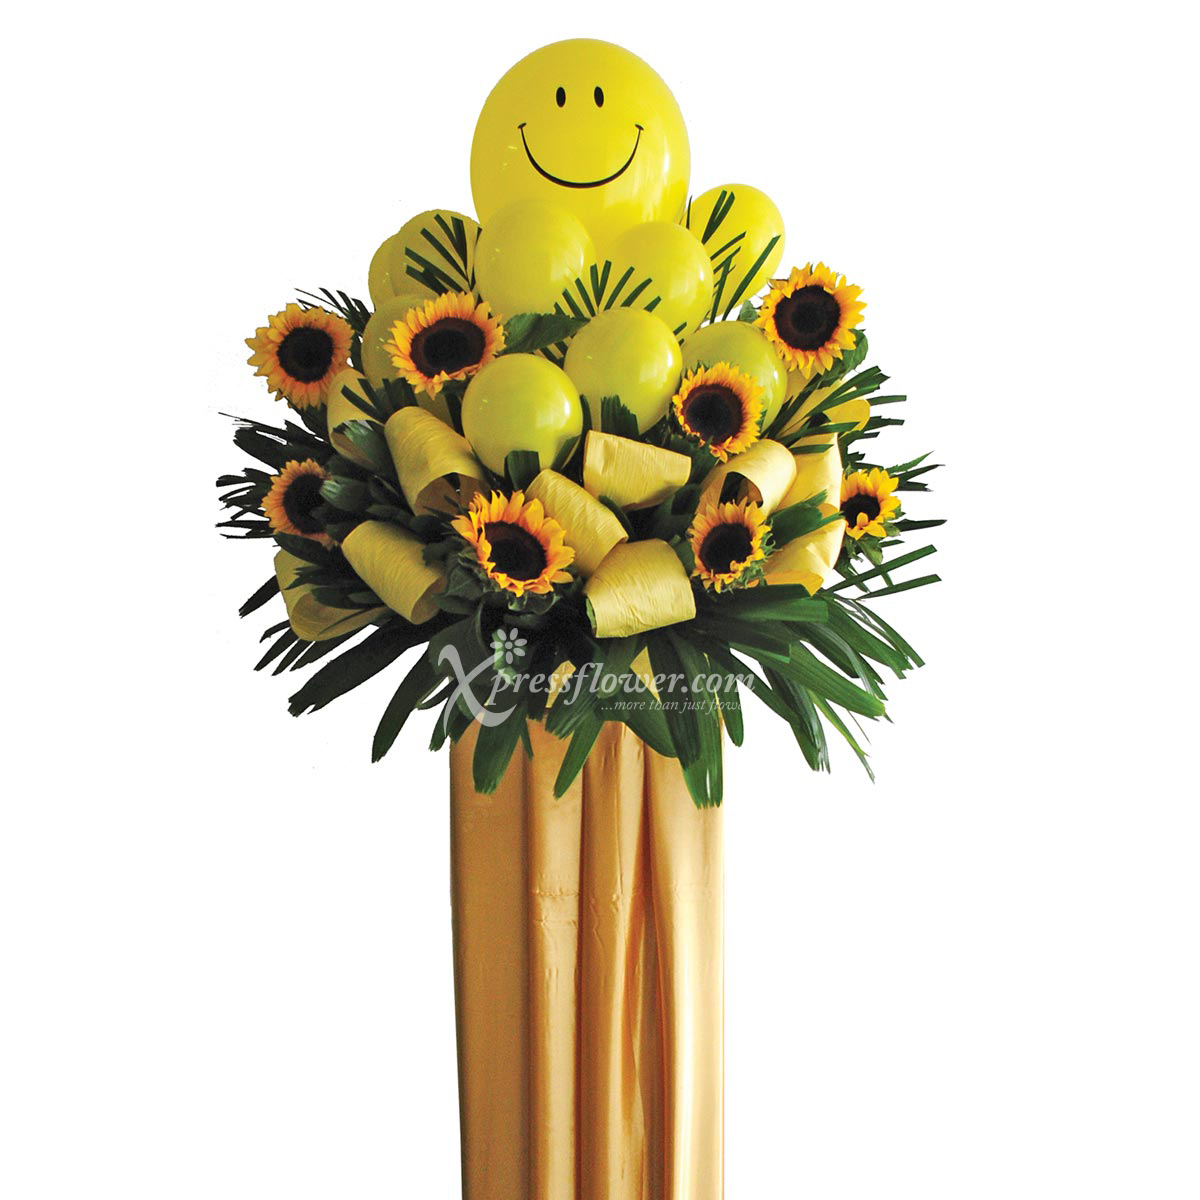 Sunflowers Congratulatory Flower Stand